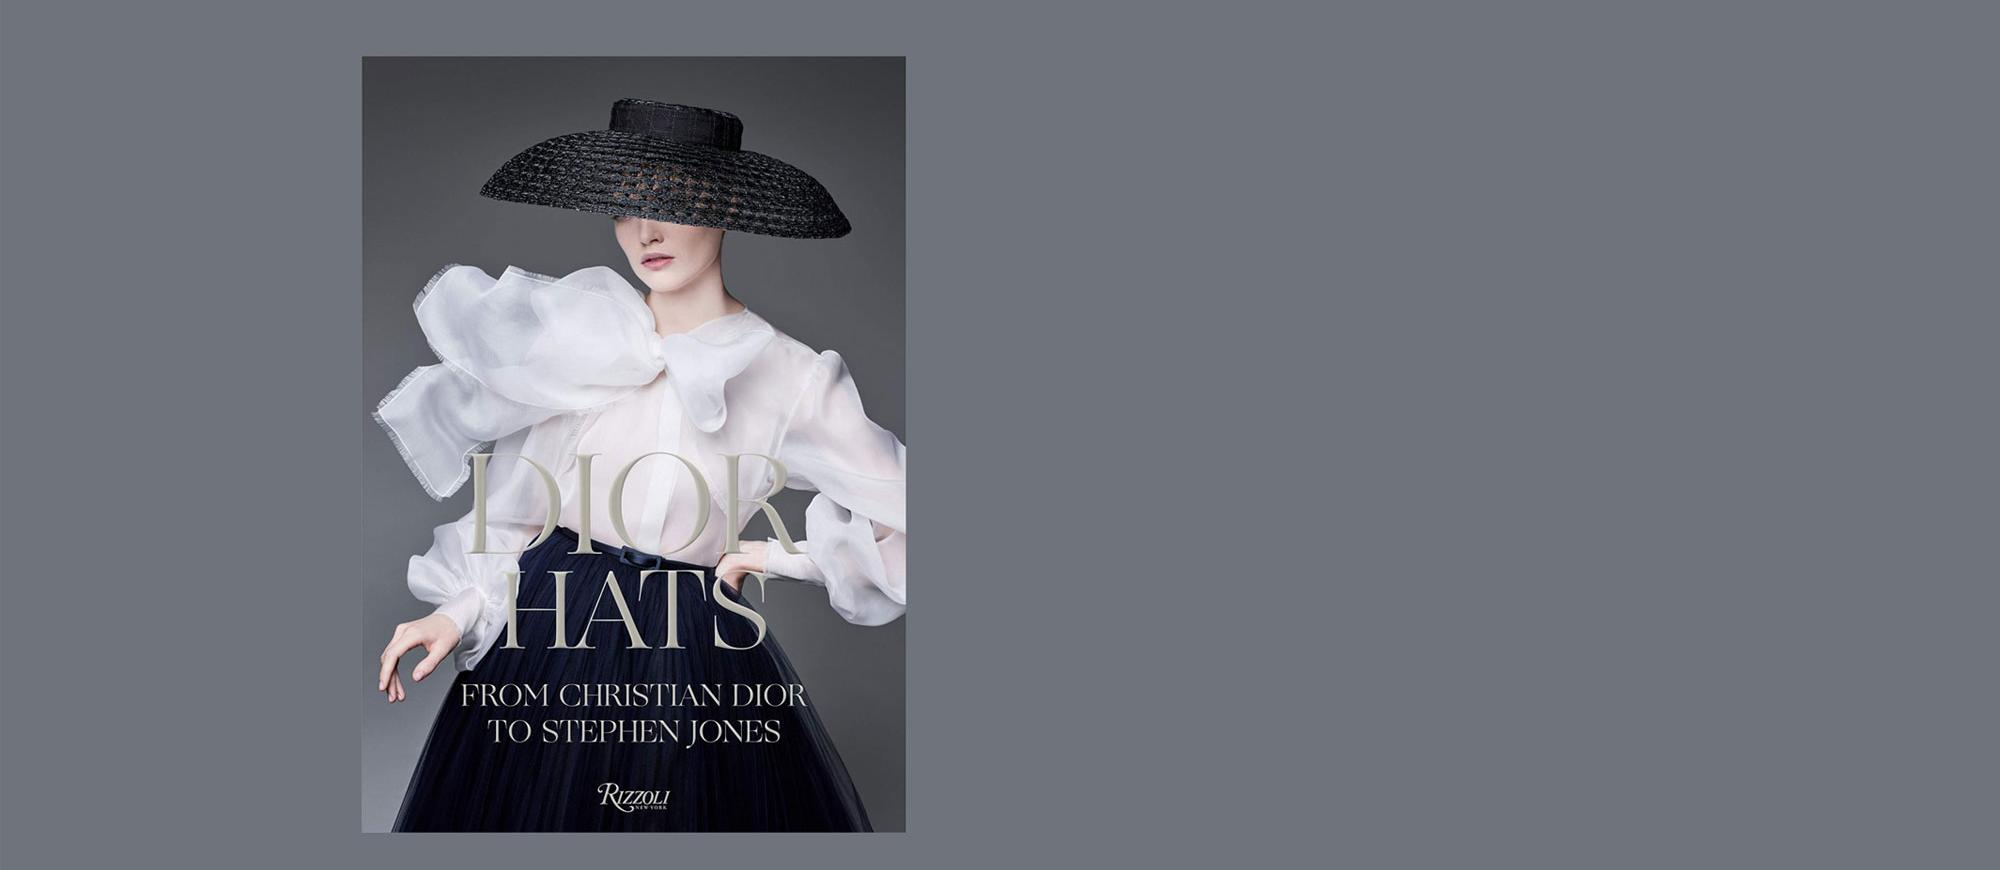 Dior Hats From Christian Dior to Stephen Jones Book